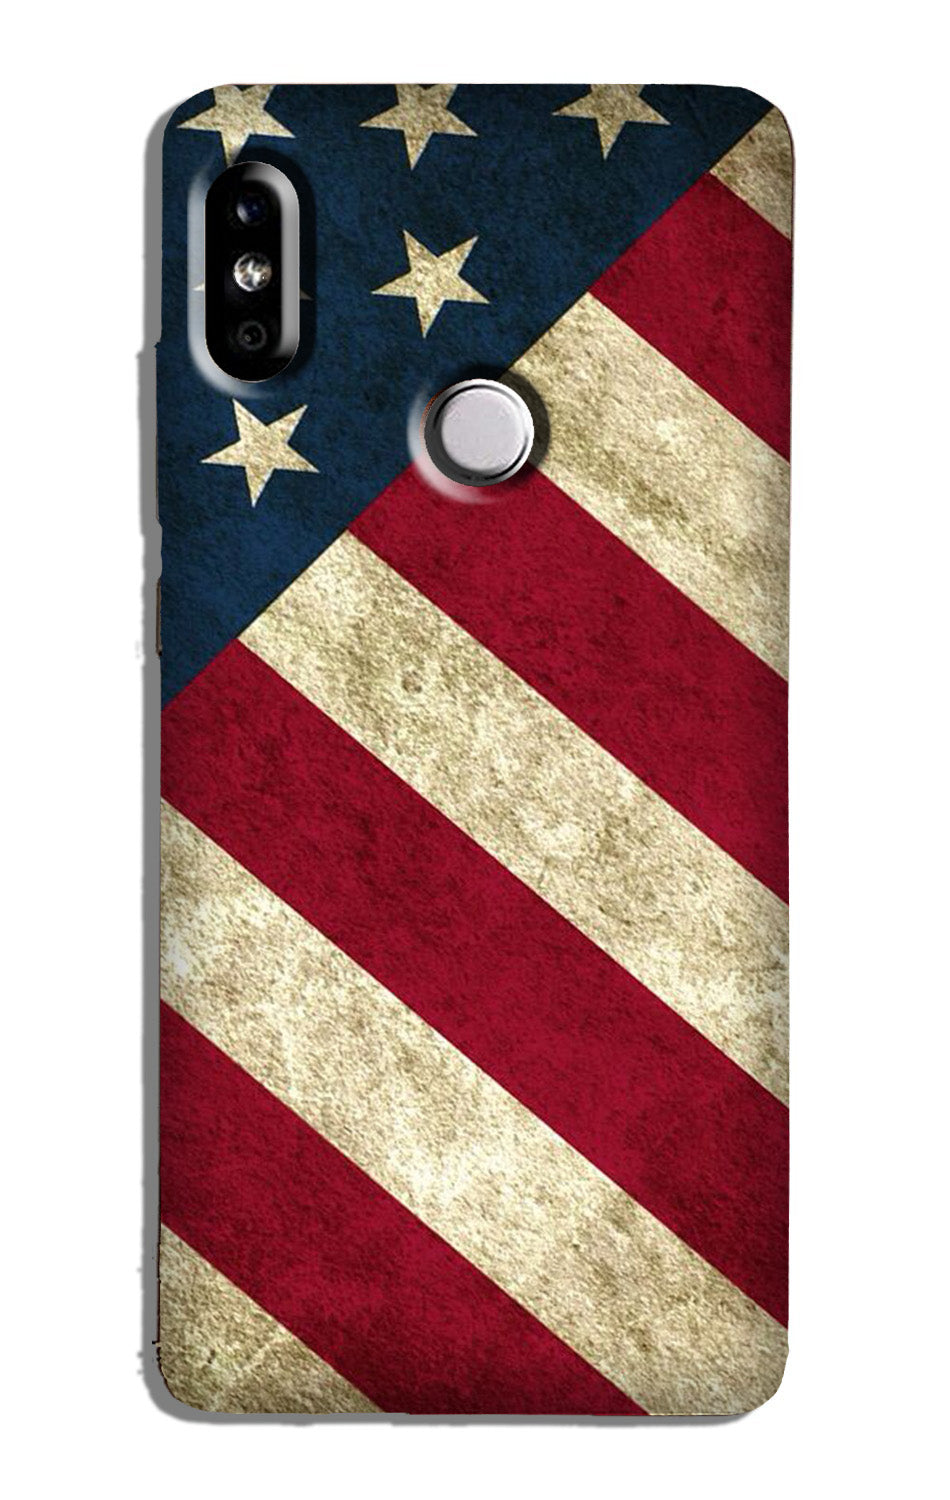 America Case for Redmi Note 6 Pro